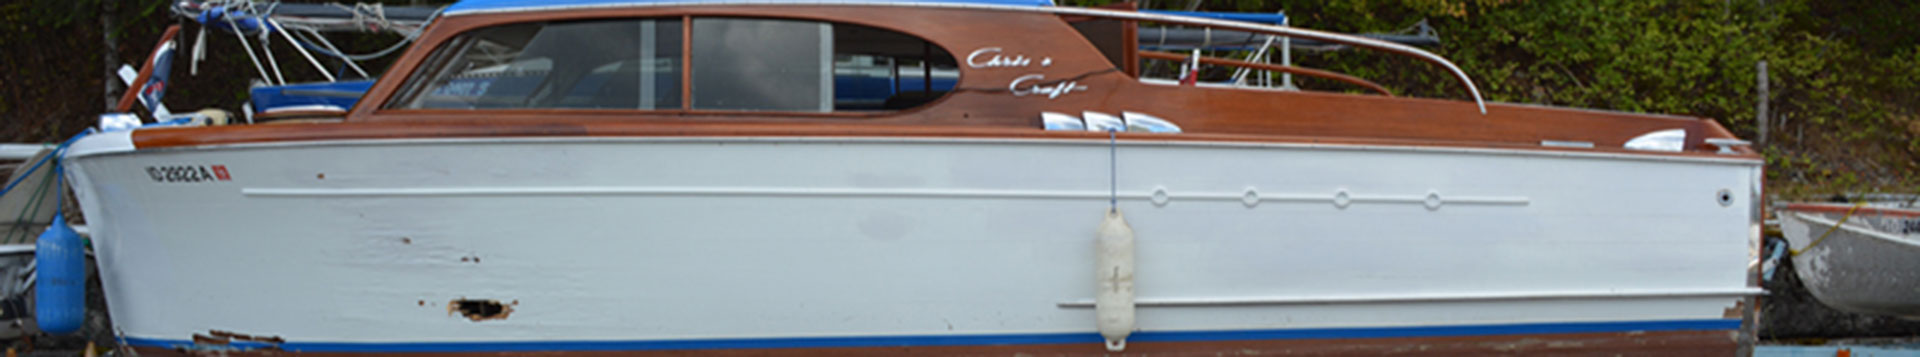 Restoration of a 1946 Chris-Craft Sedan Cruiser